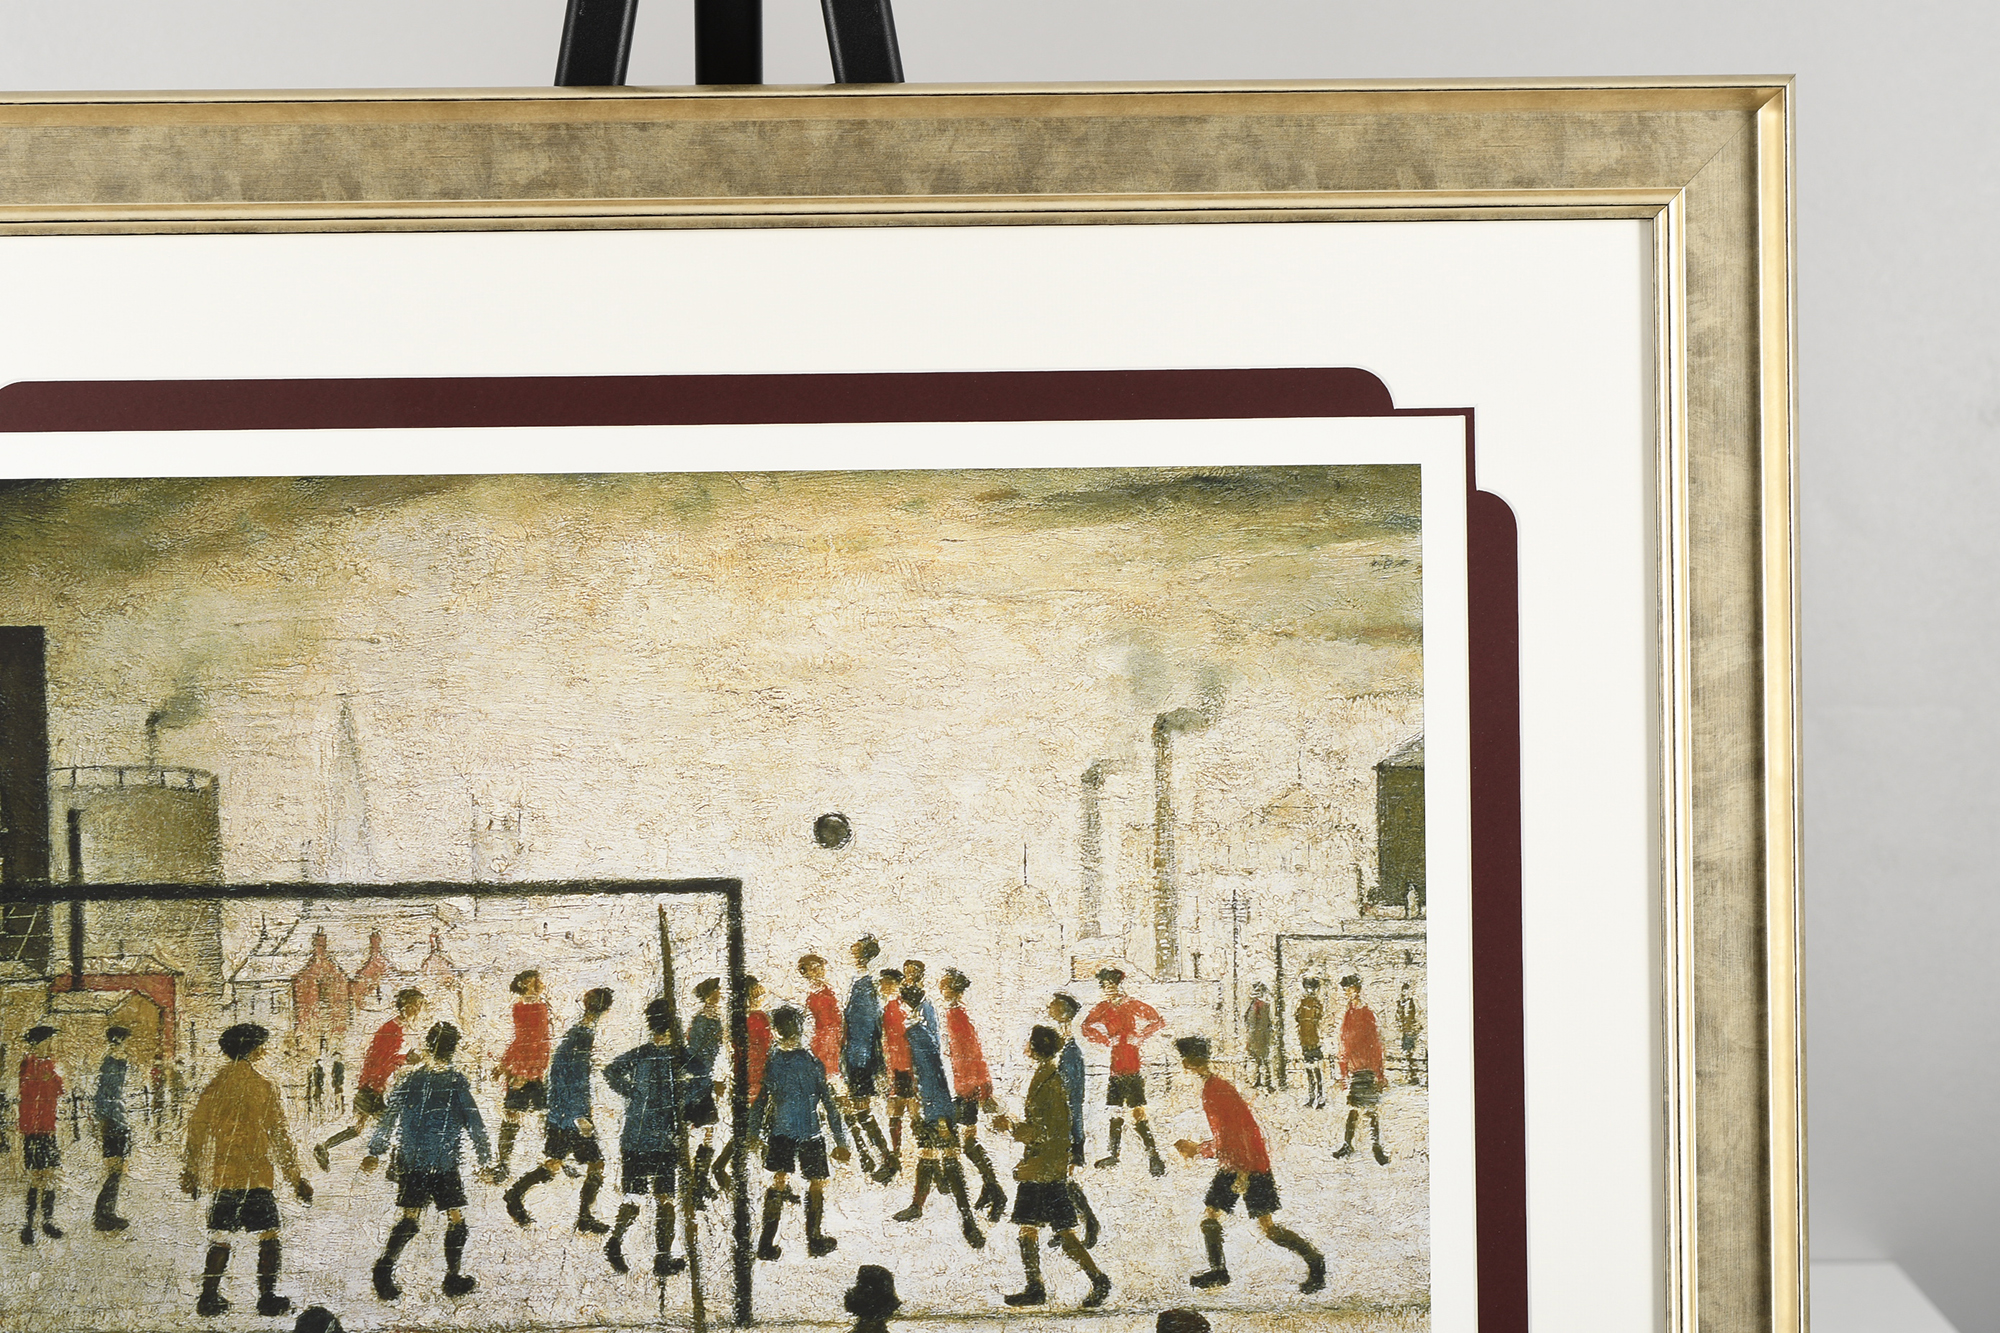 """Limited Edition by L.S. Lowry """"The Football Match"""" - Image 5 of 8"""